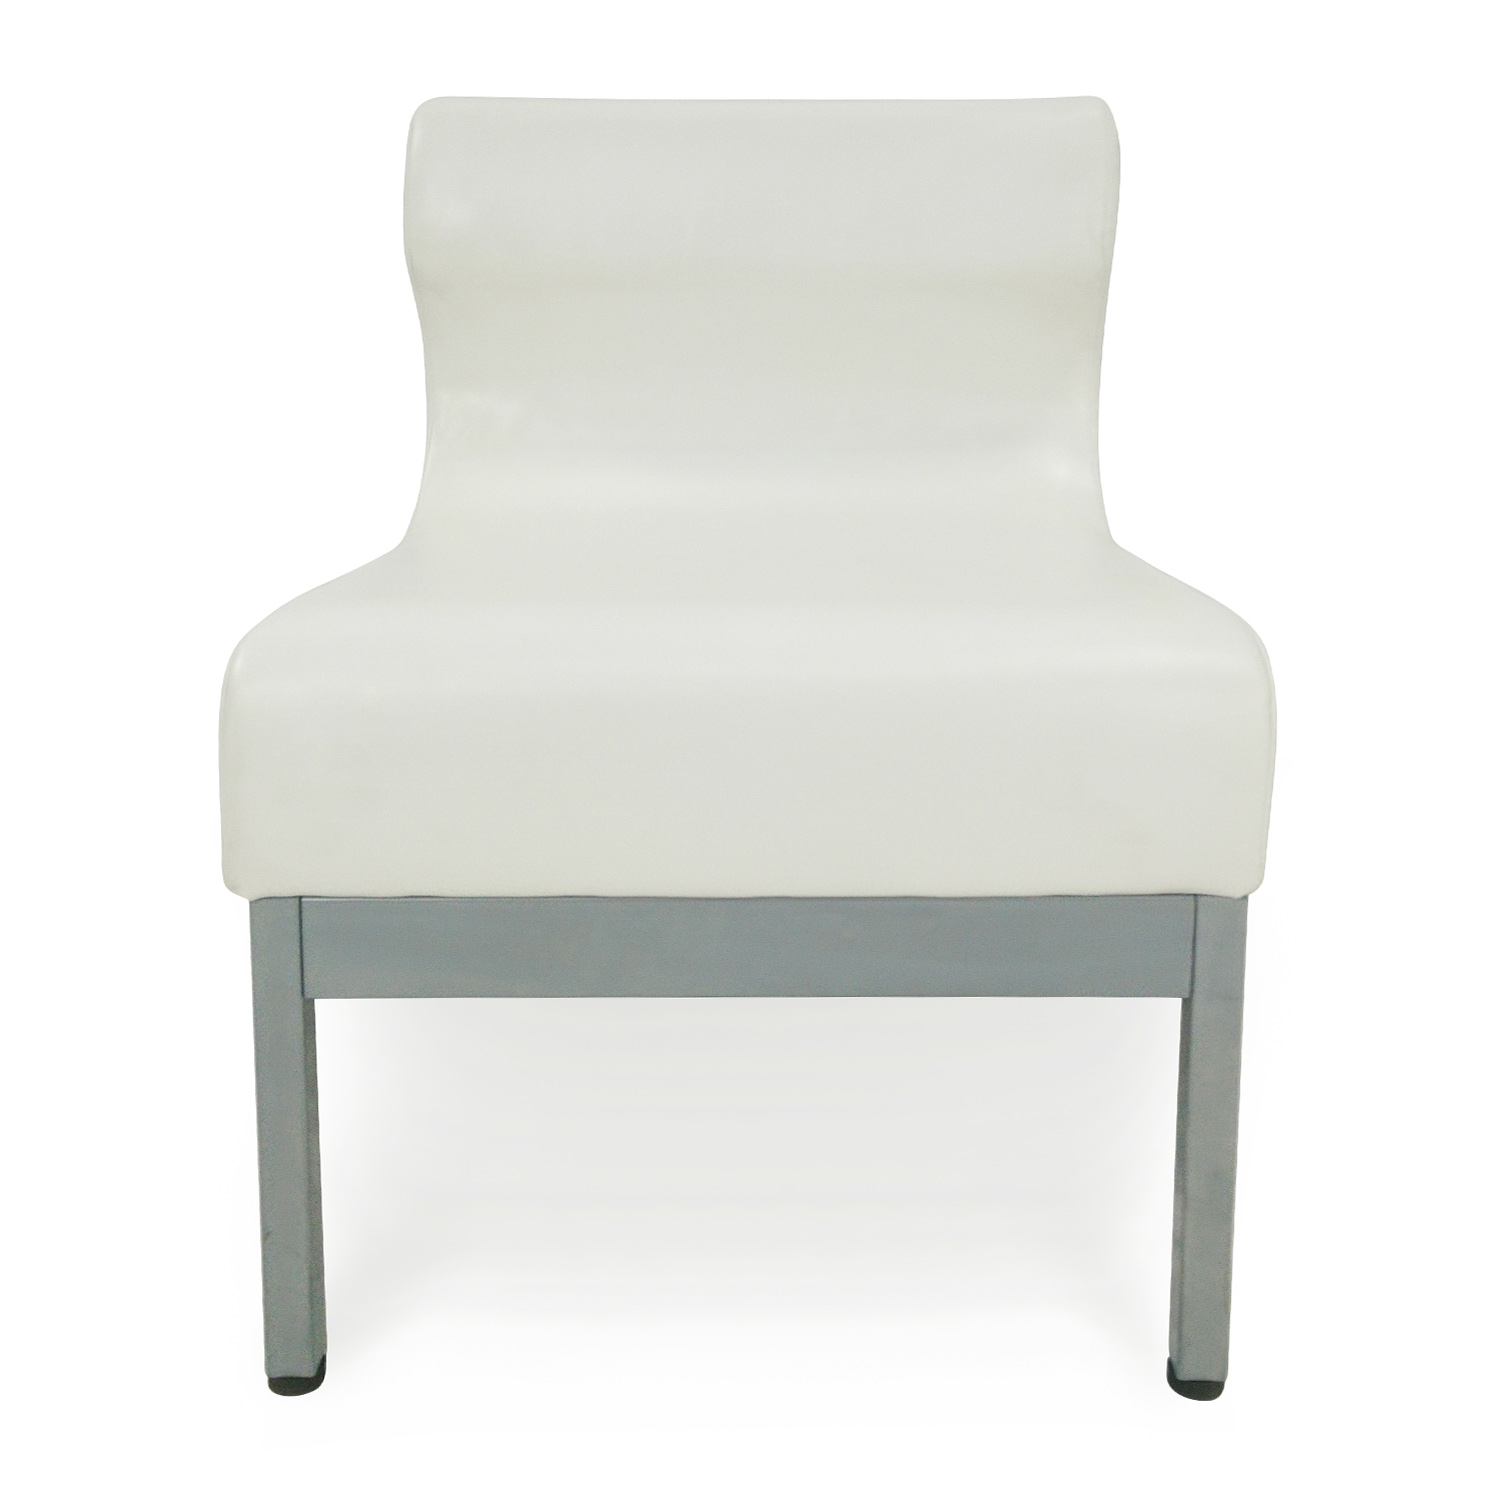 Zuo Modern Chair Zuo Modern Contemporary